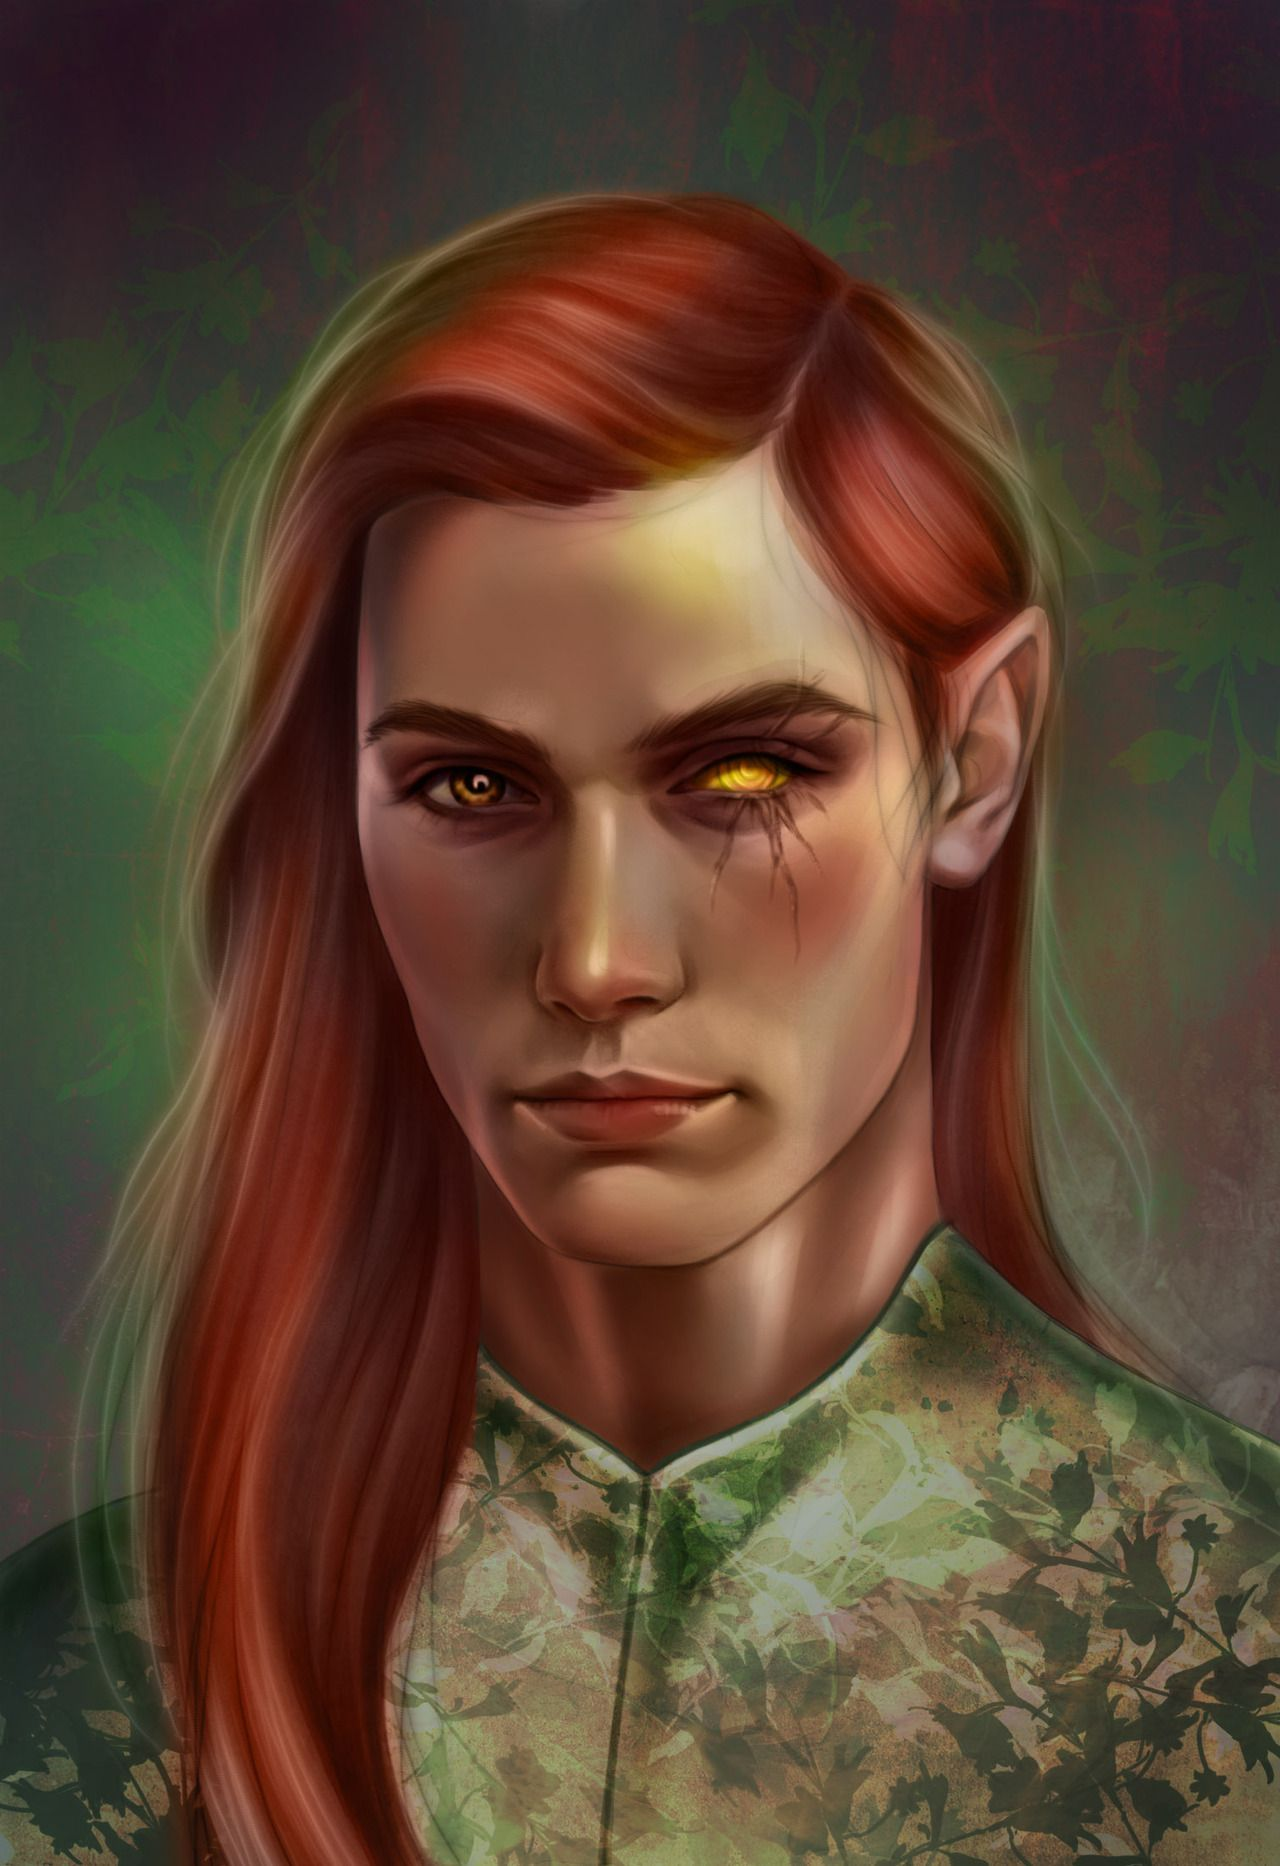 Our Foxboy Lucien From A Court Of Thorns And Roses Series Art By